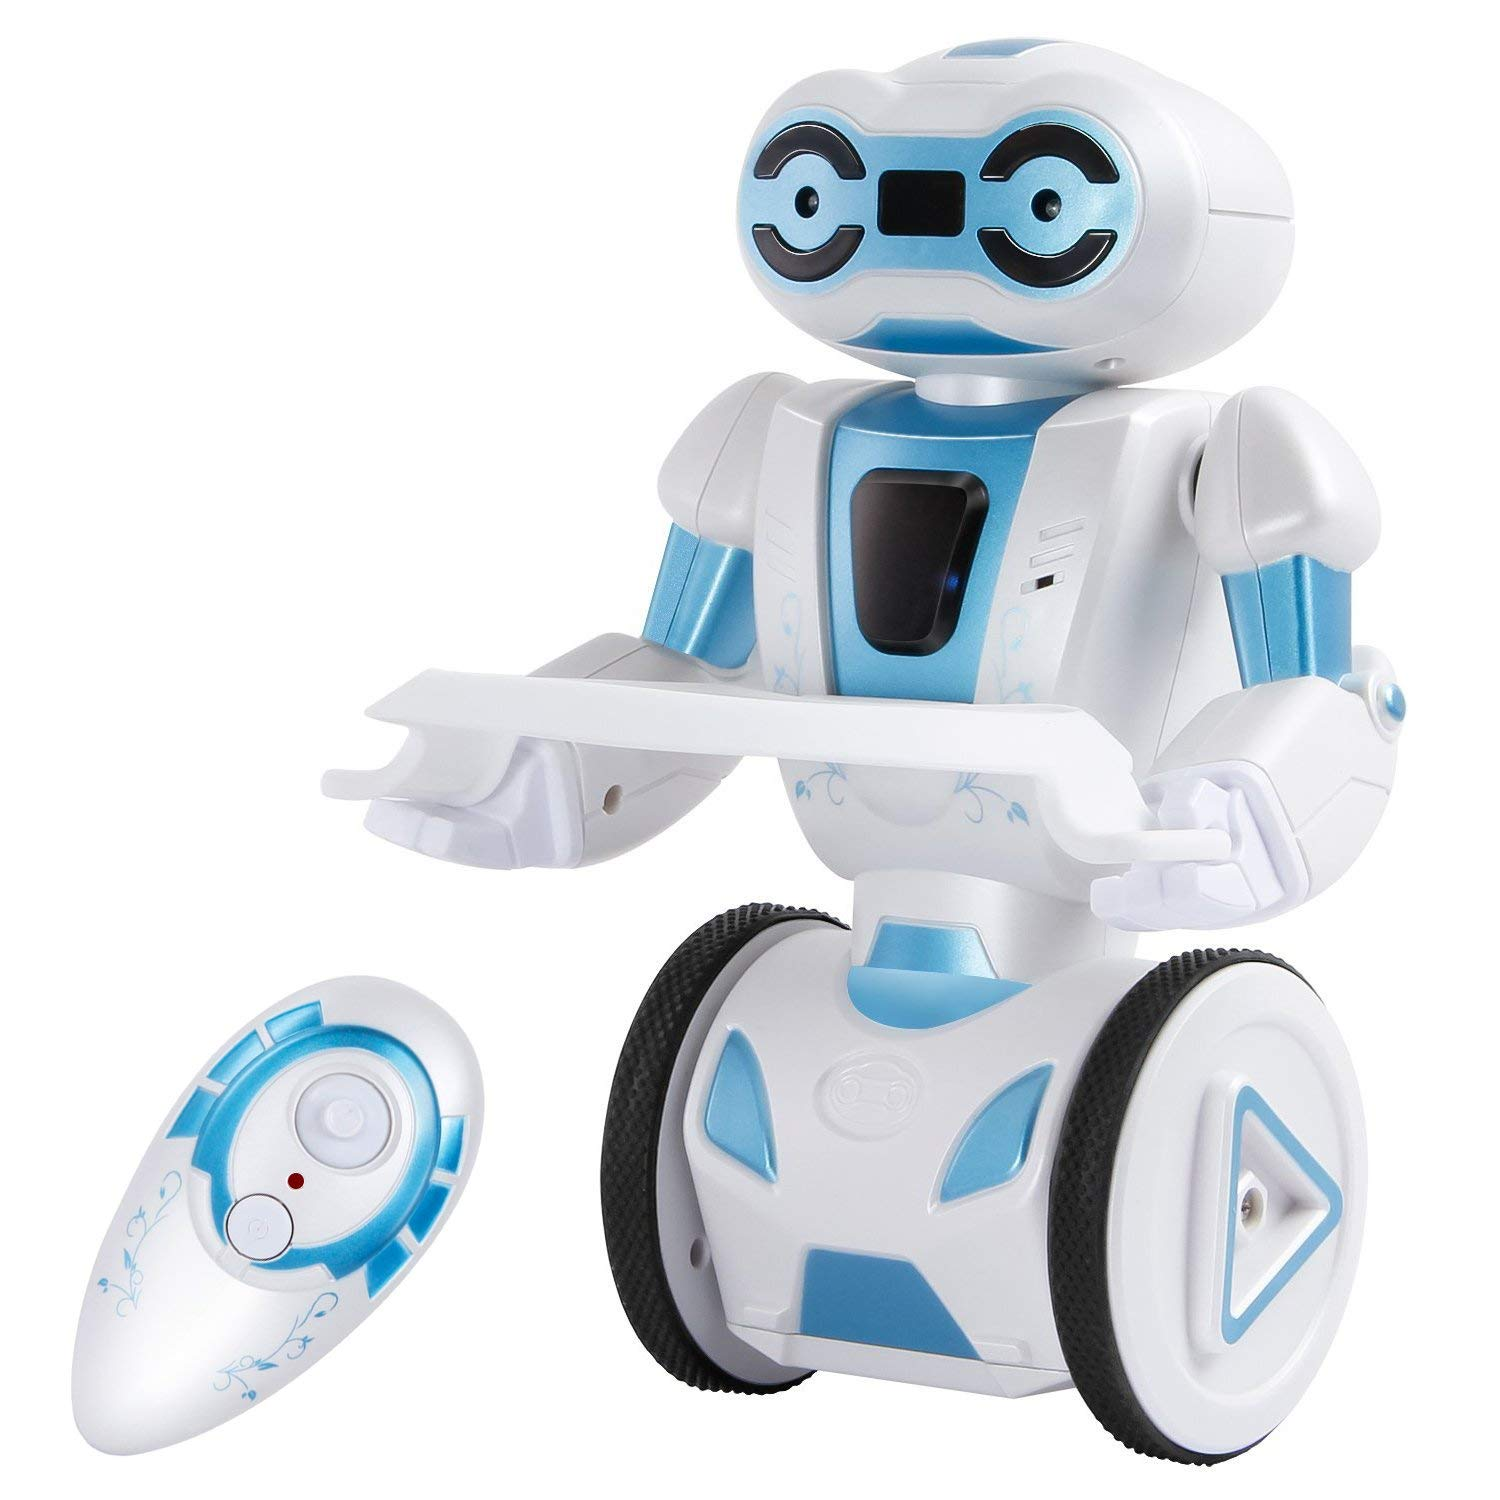 Hi-Tech 2.4GHz Remote Control Robot Smart Toys, 5 Modes Interactive Robot for Kids,Children,Girls, Boys by HI-TECH OPTOELETRONICS CO., LTD. (Image #1)